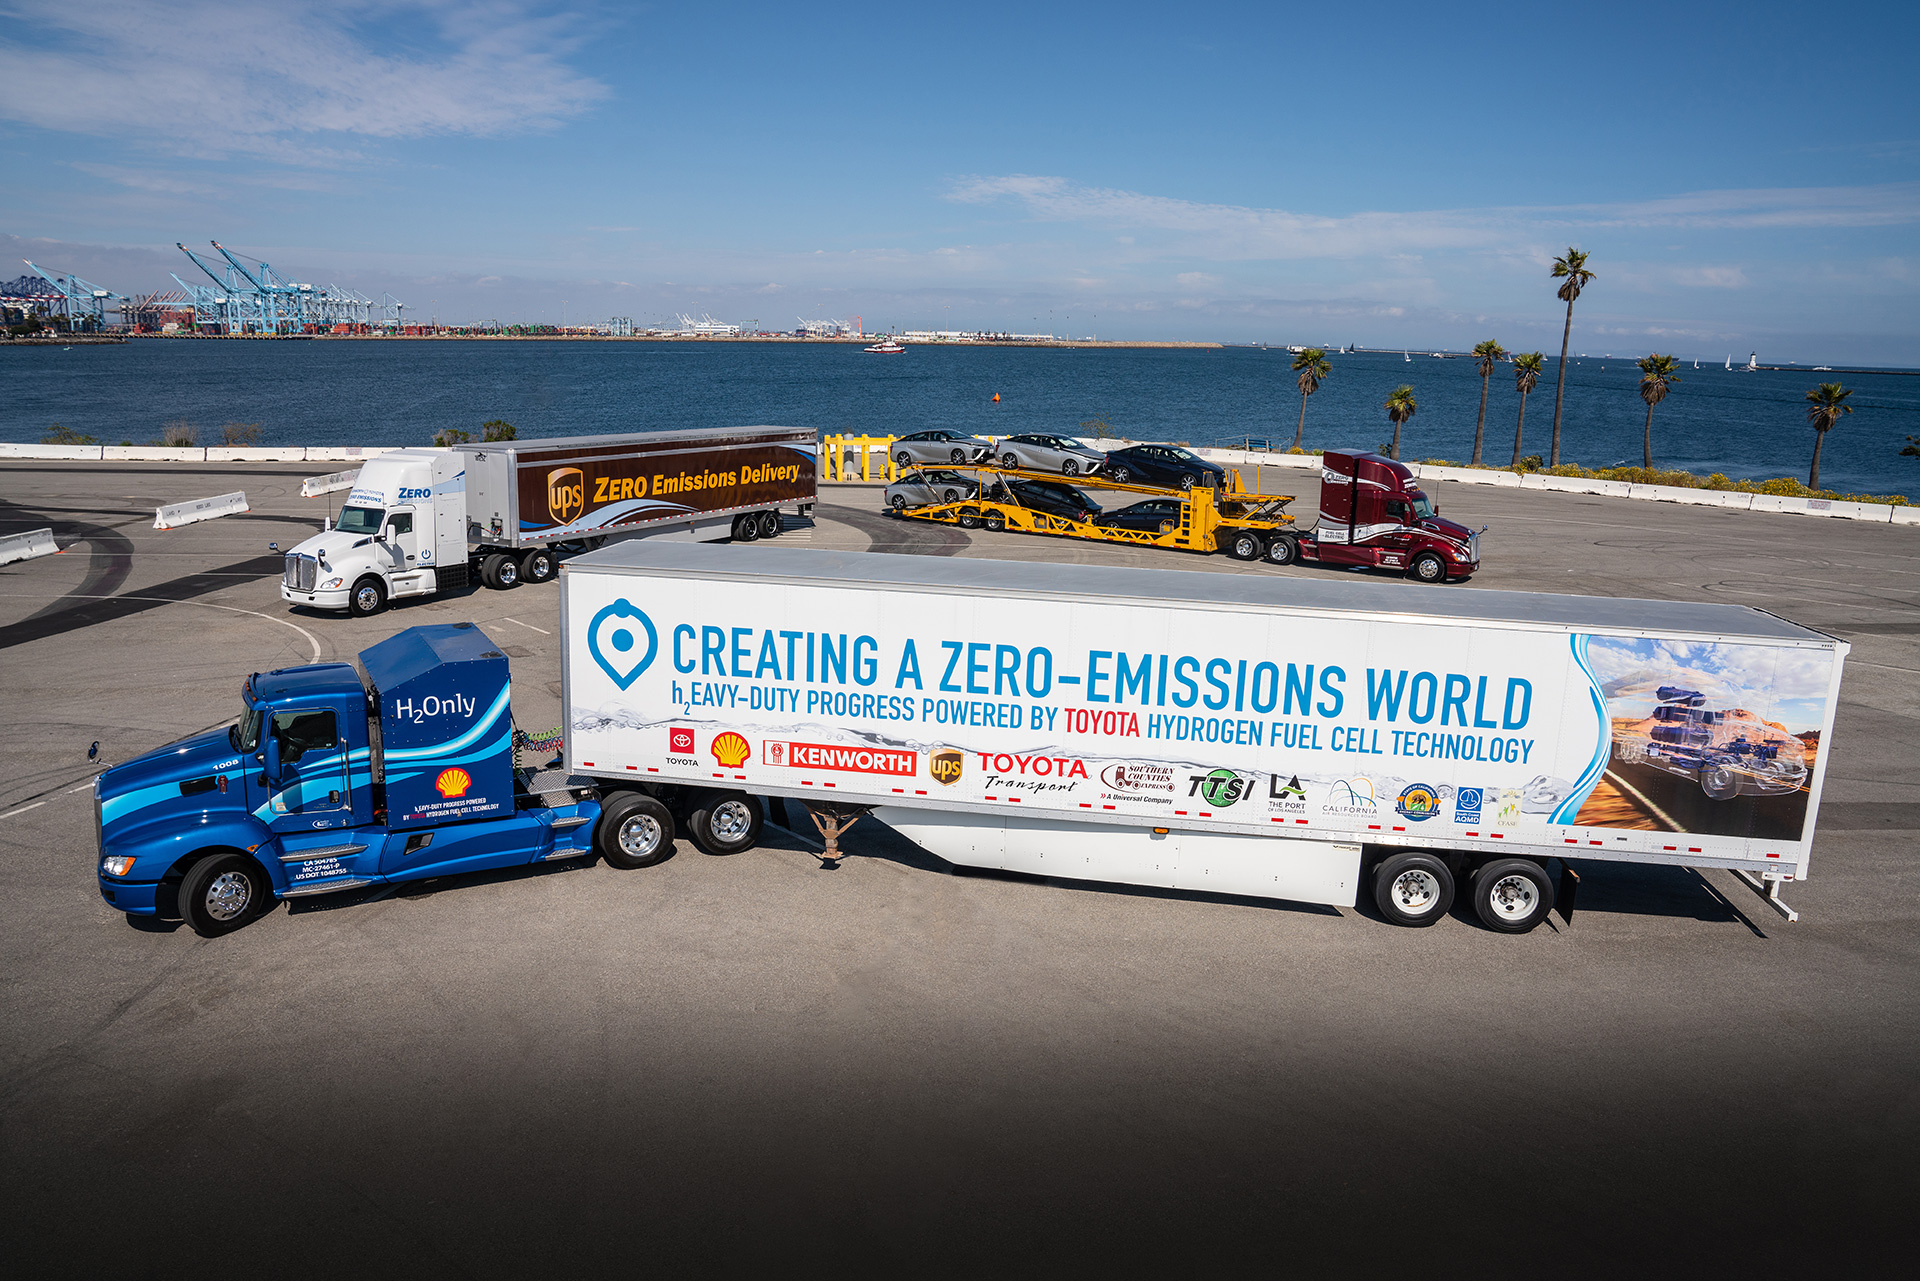 The Future of Zero-Emission Trucking Takes Another Leap